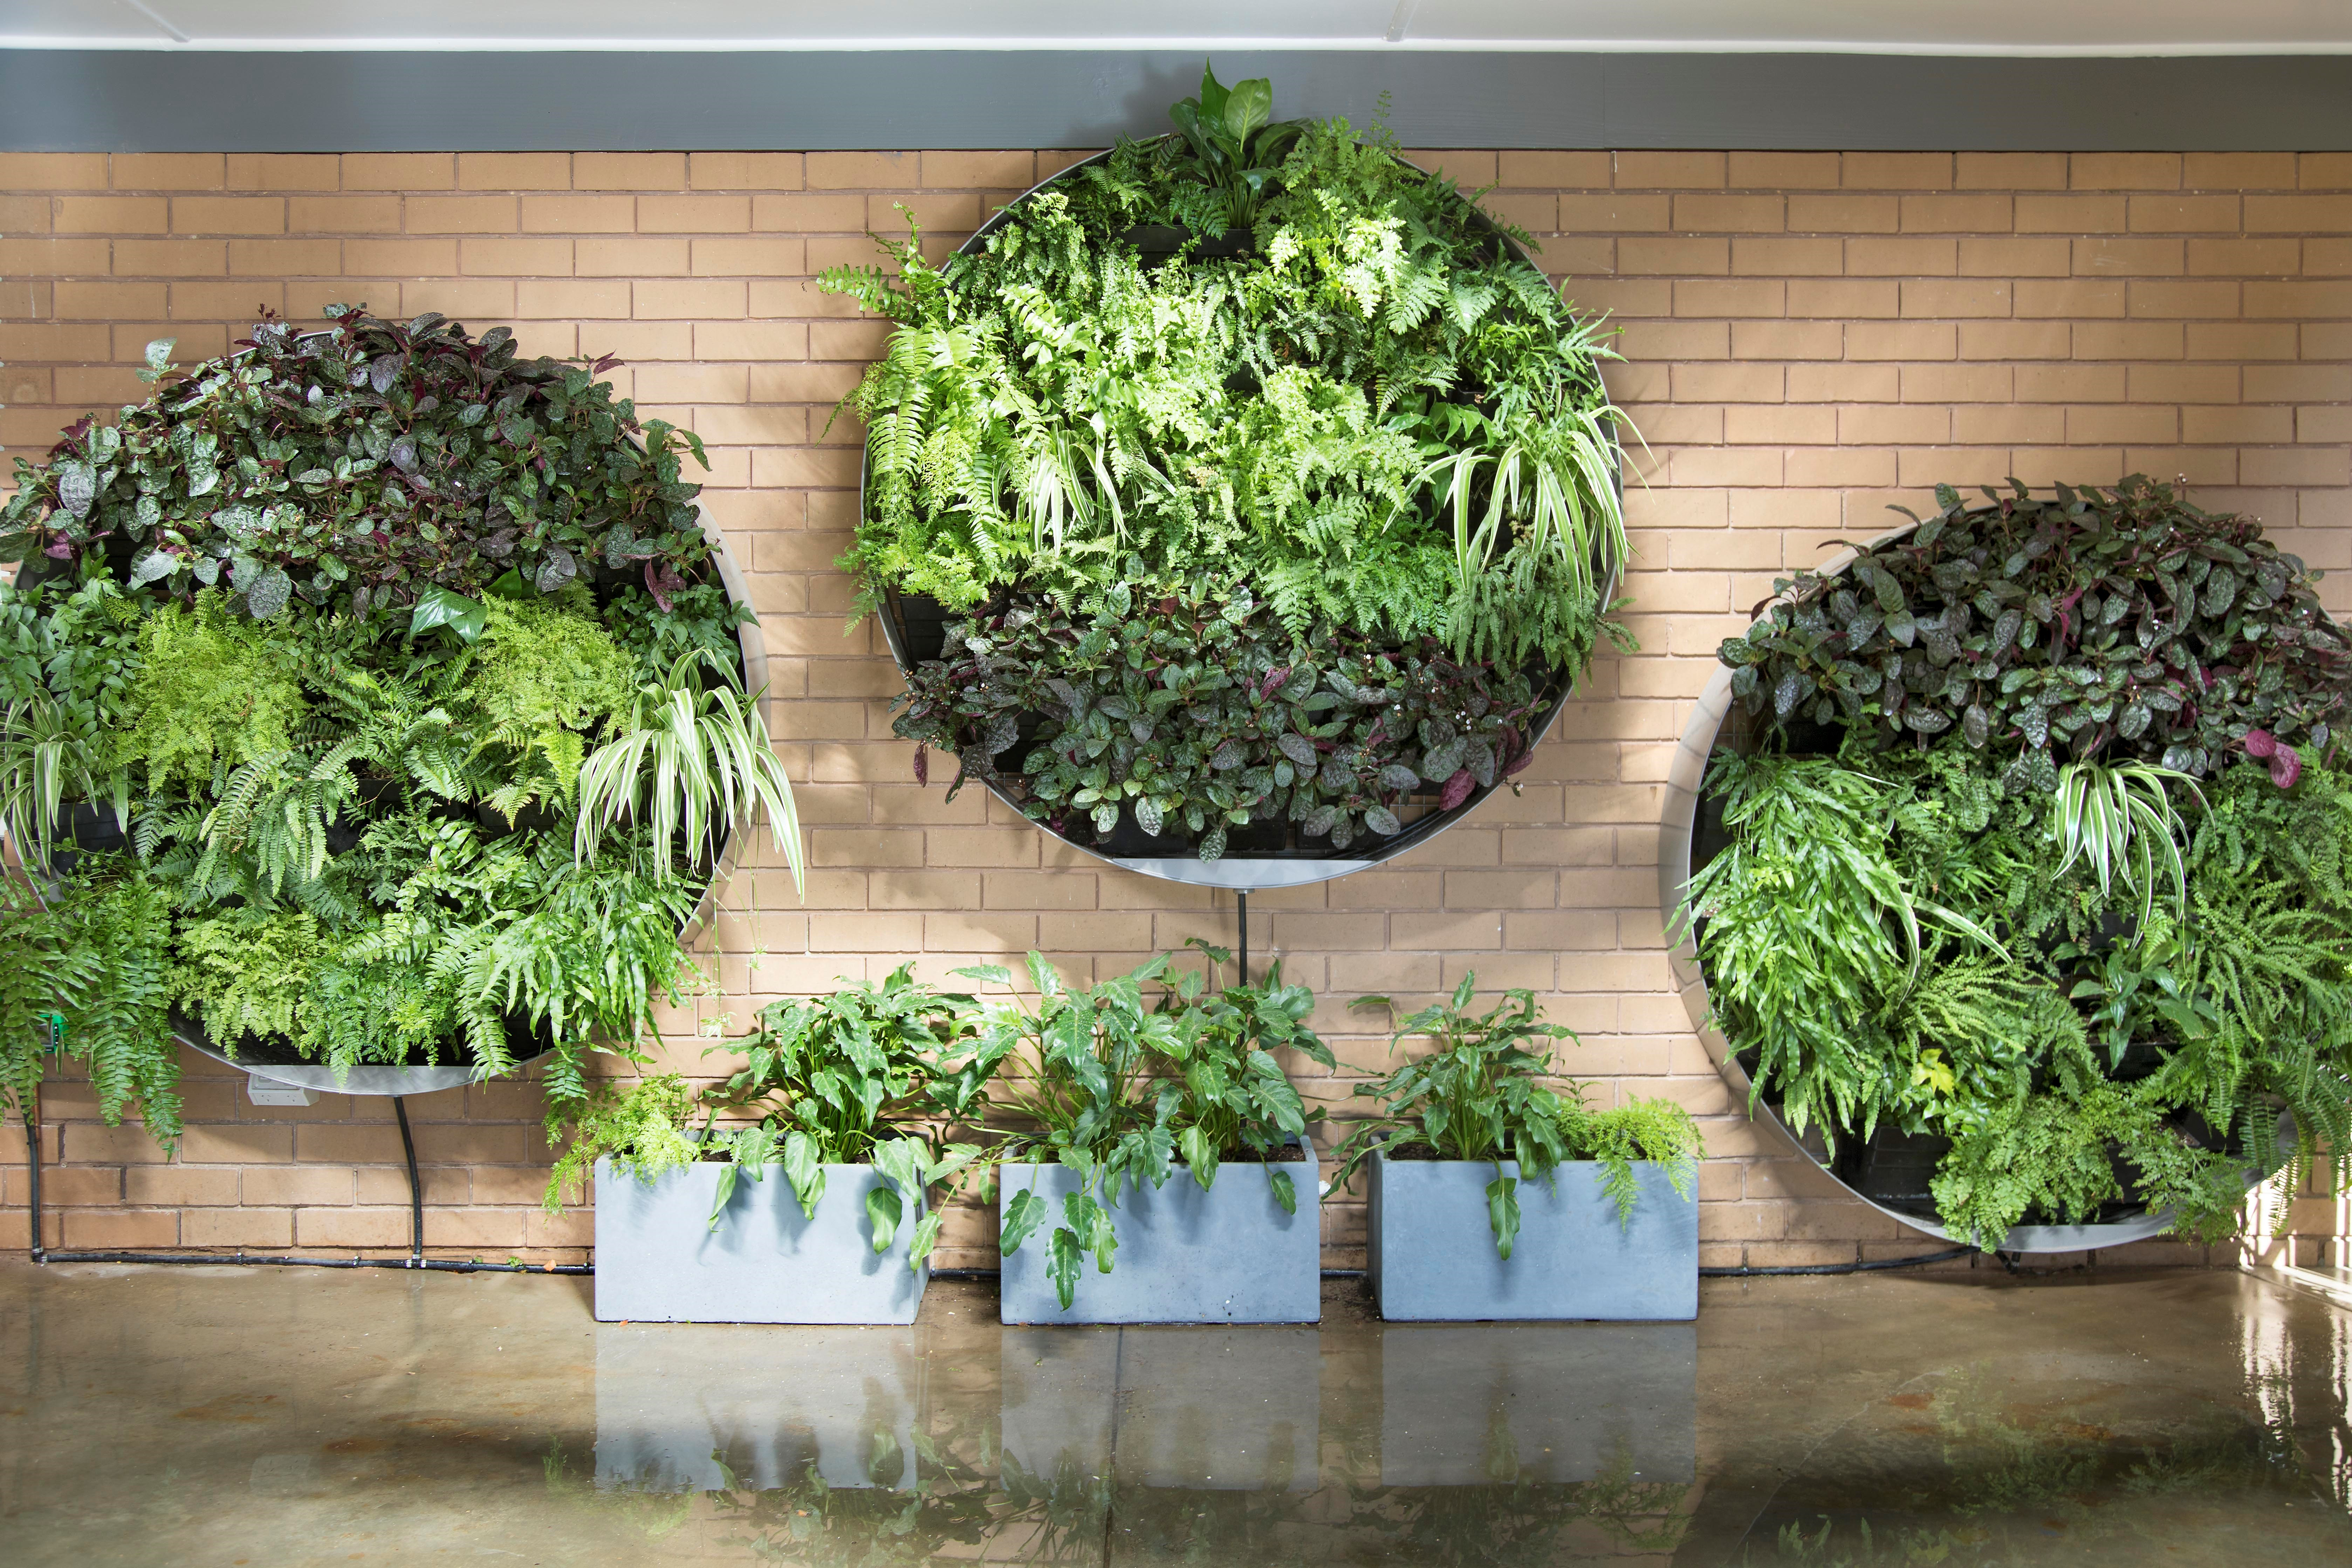 vertical garden vg 52 - as seen on buying blind NGOSWIU